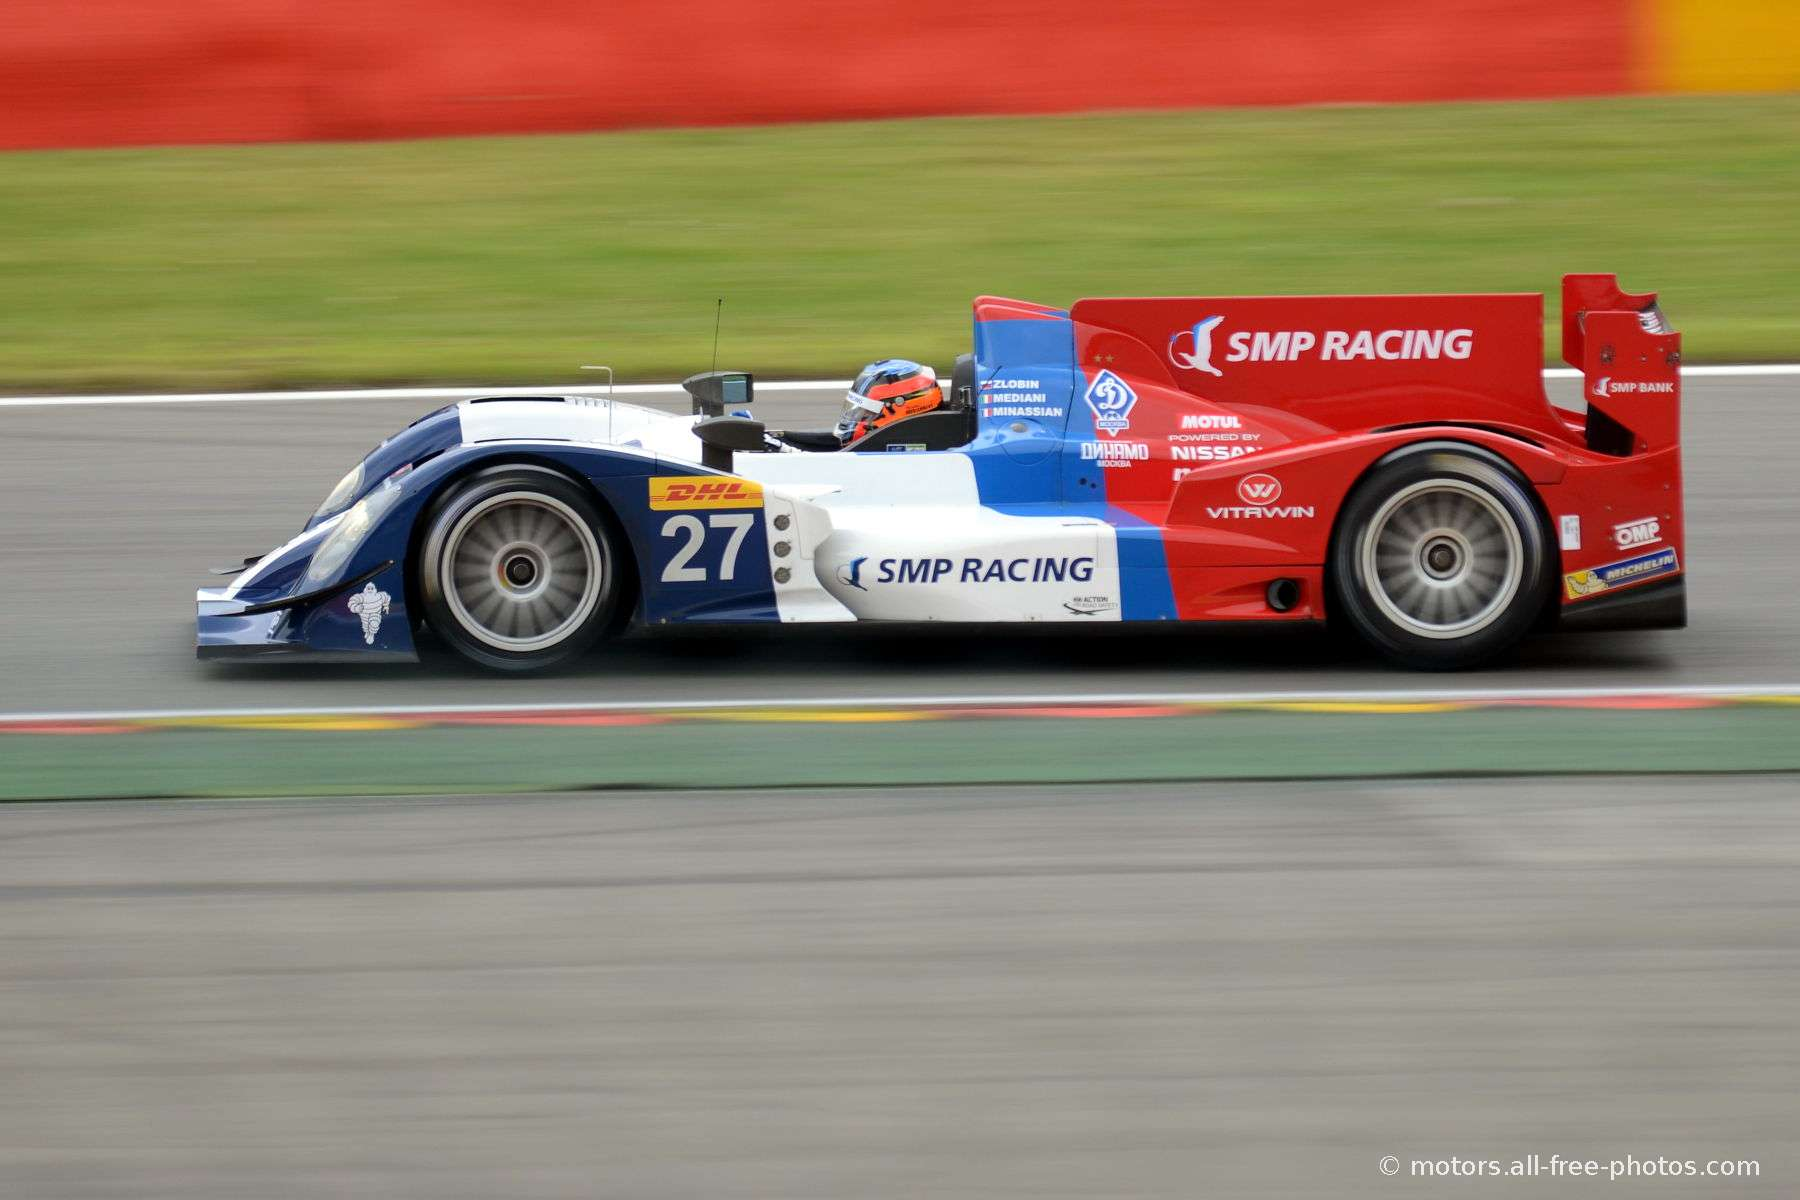 Oreca 03-Nissan - Team SMP Racing